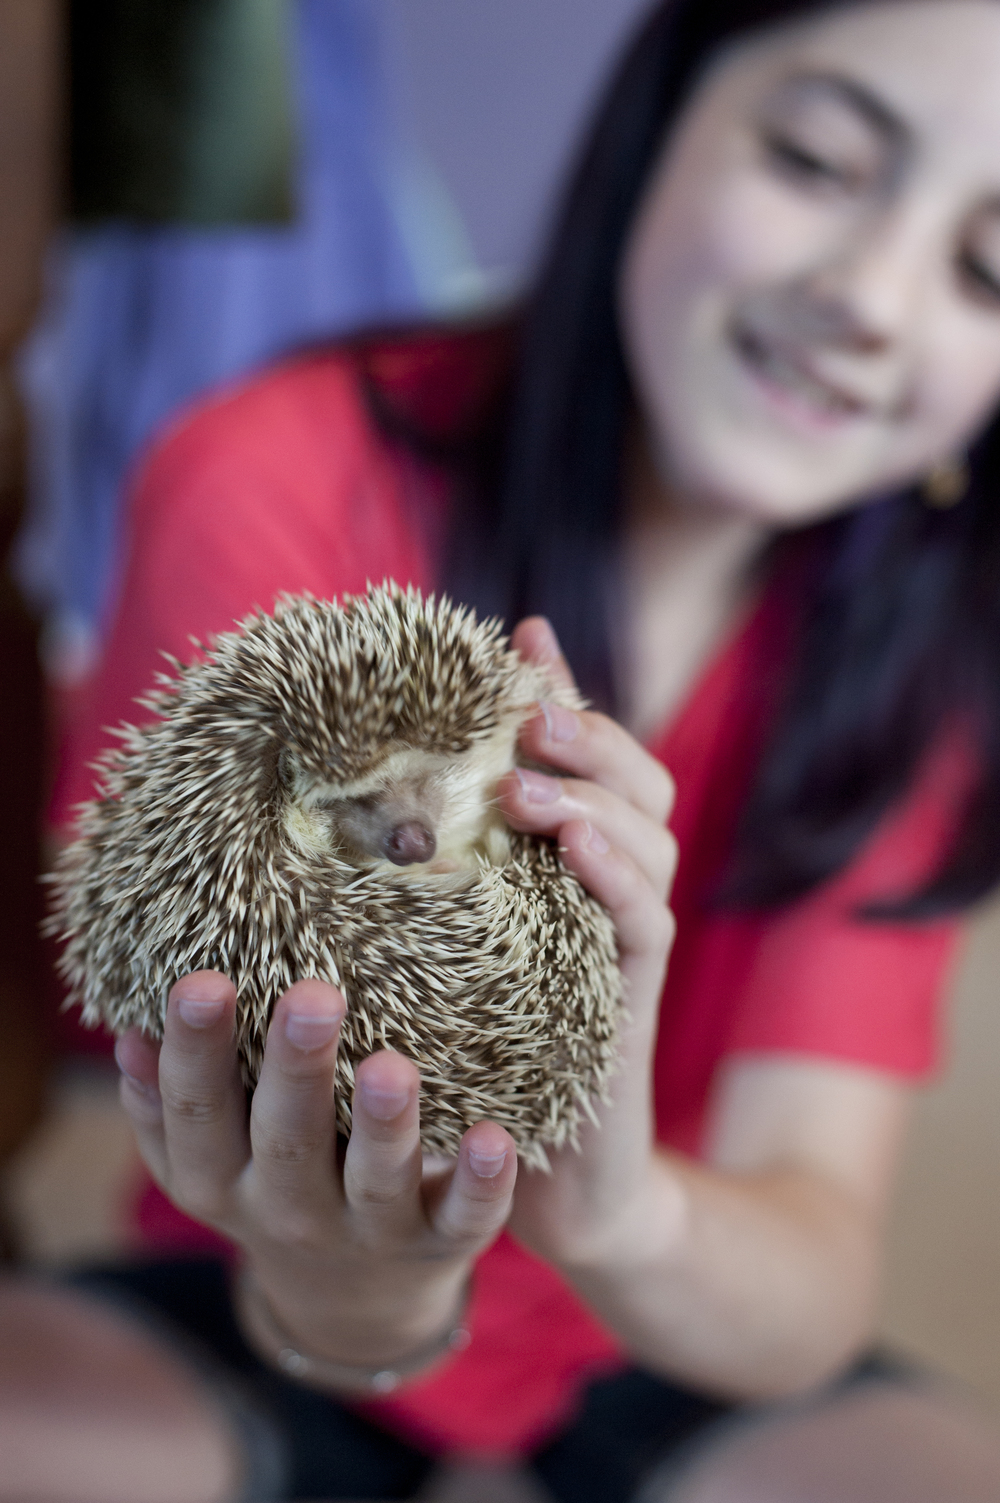 Livia Ball, 12, holds up her pet hedgehog, Bilbo, in her bedroom June 20, 2014. Ball has had Bilbo for almost a year and did a lot of research before her parents would let her get a hedgehog.